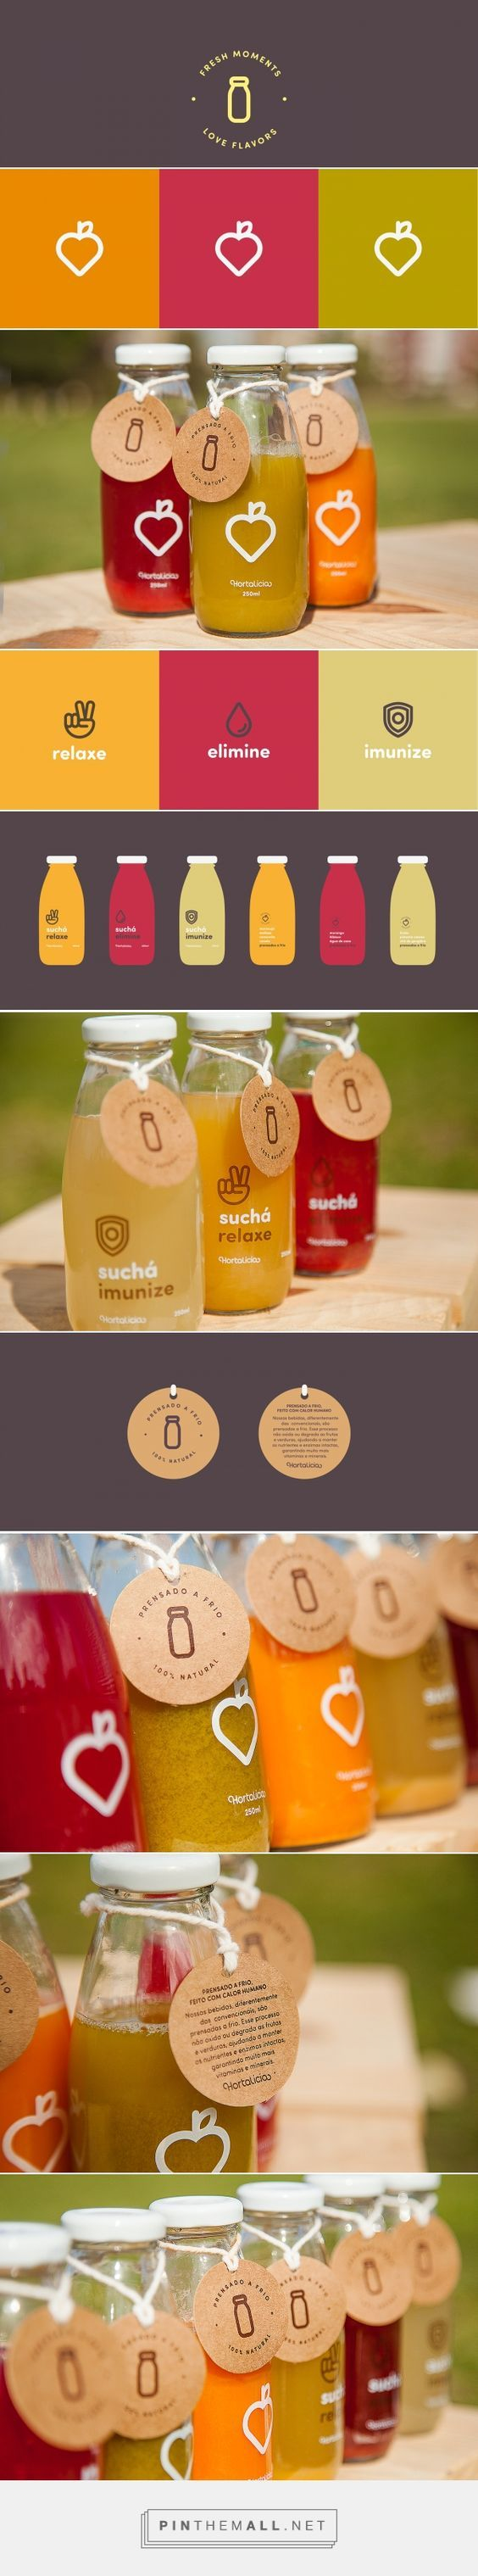 Sucos e Suchás Hortalícia on Behance curated by Packaging Diva PD.  Juices and…